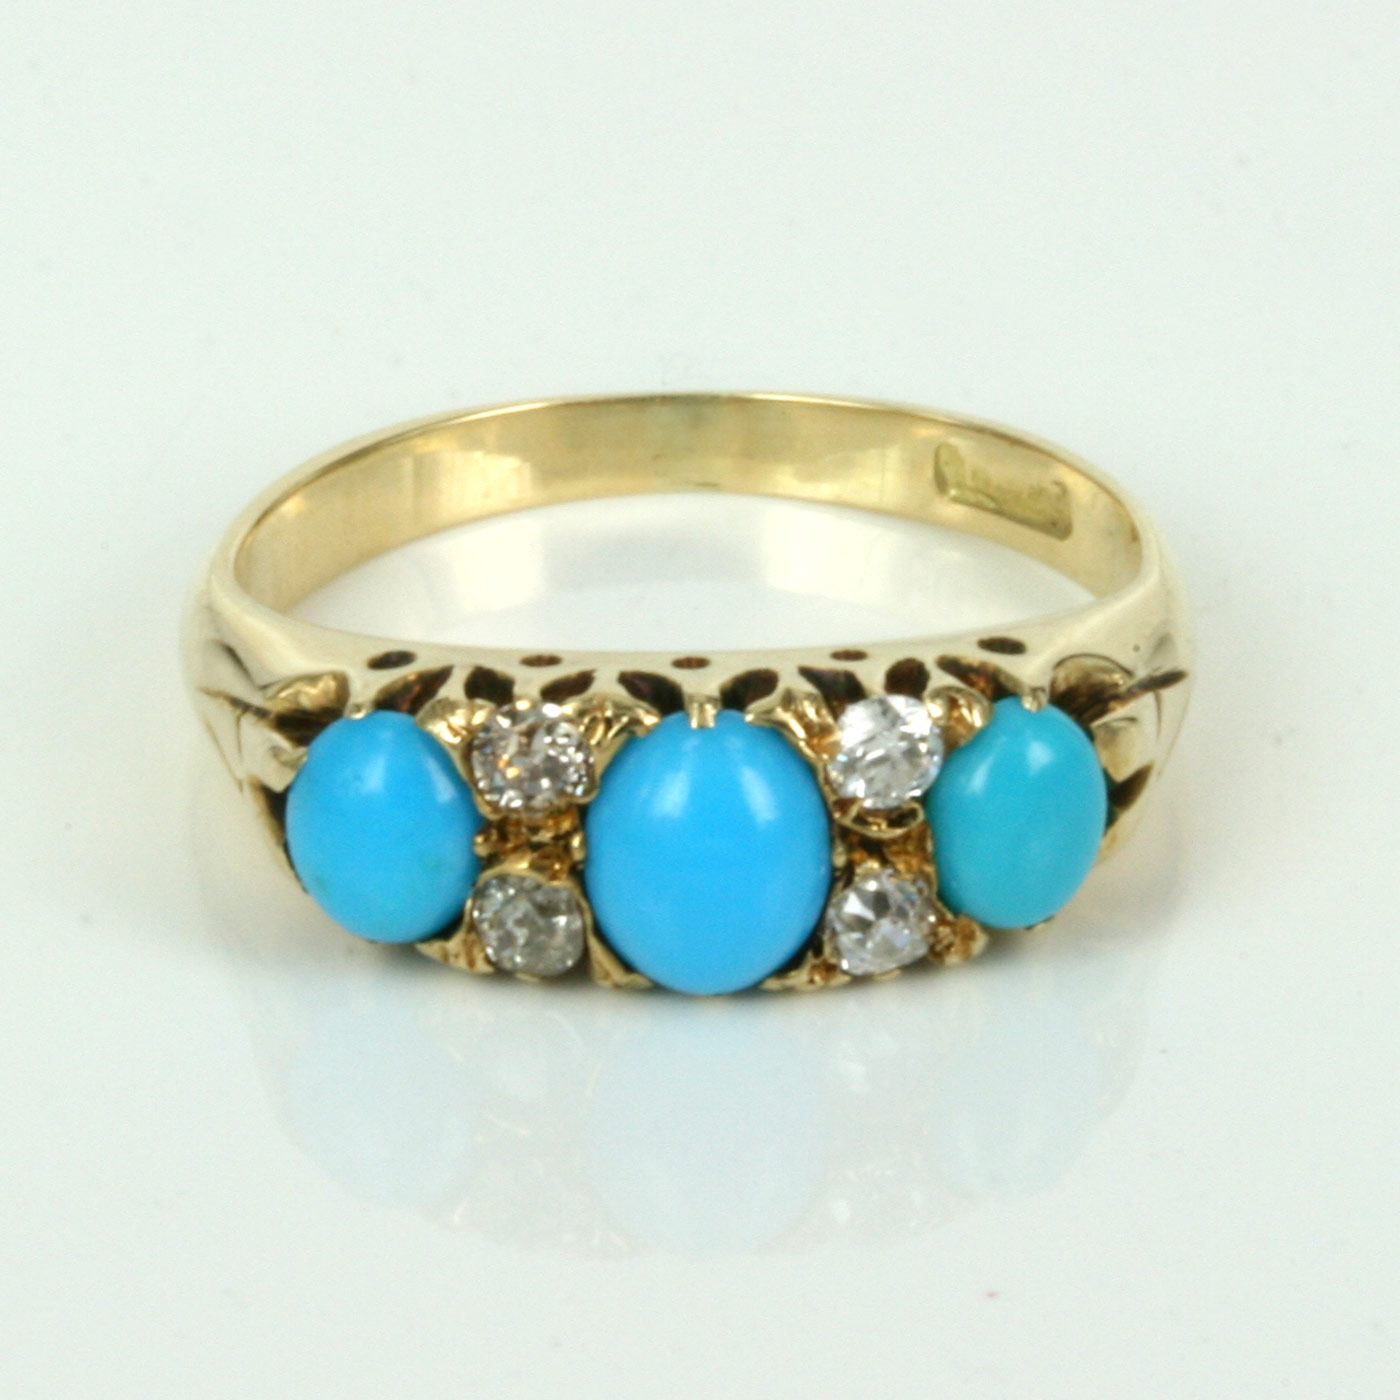 Antique Turquoise And Gold Rings